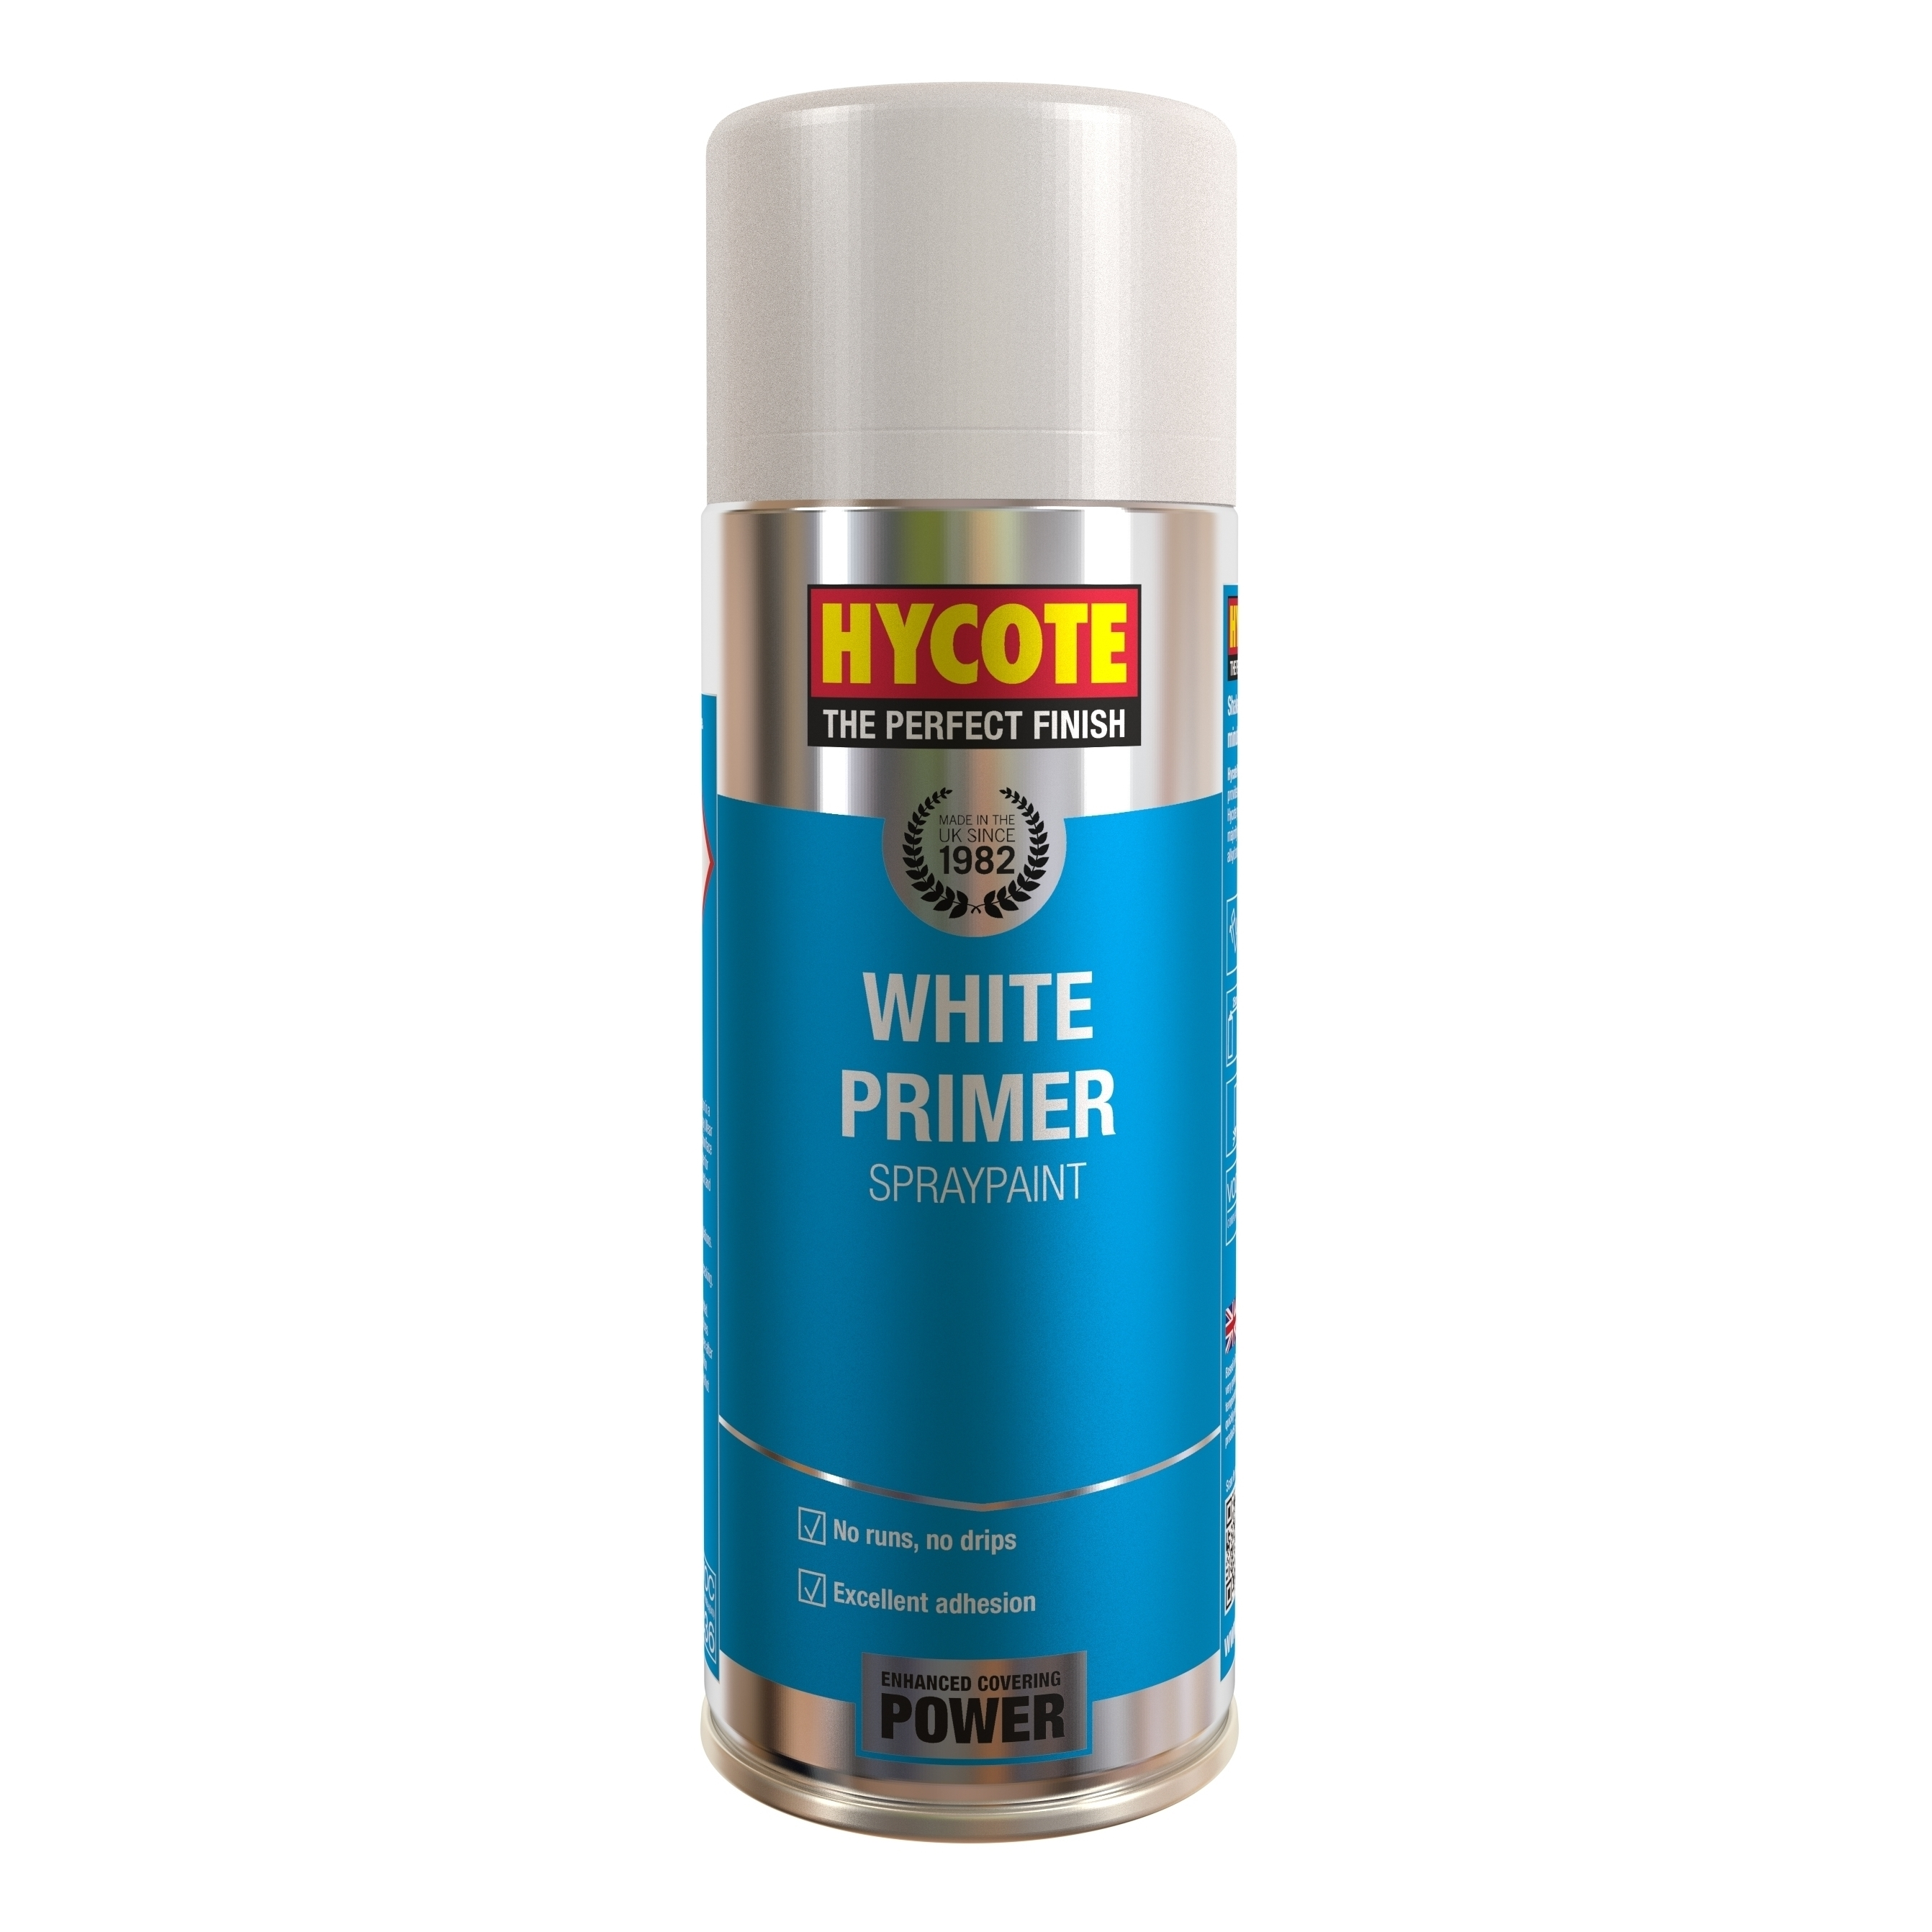 Hycote White Primer 400ml 1 X Aerosol Spray Paint Uk0302 Ebay